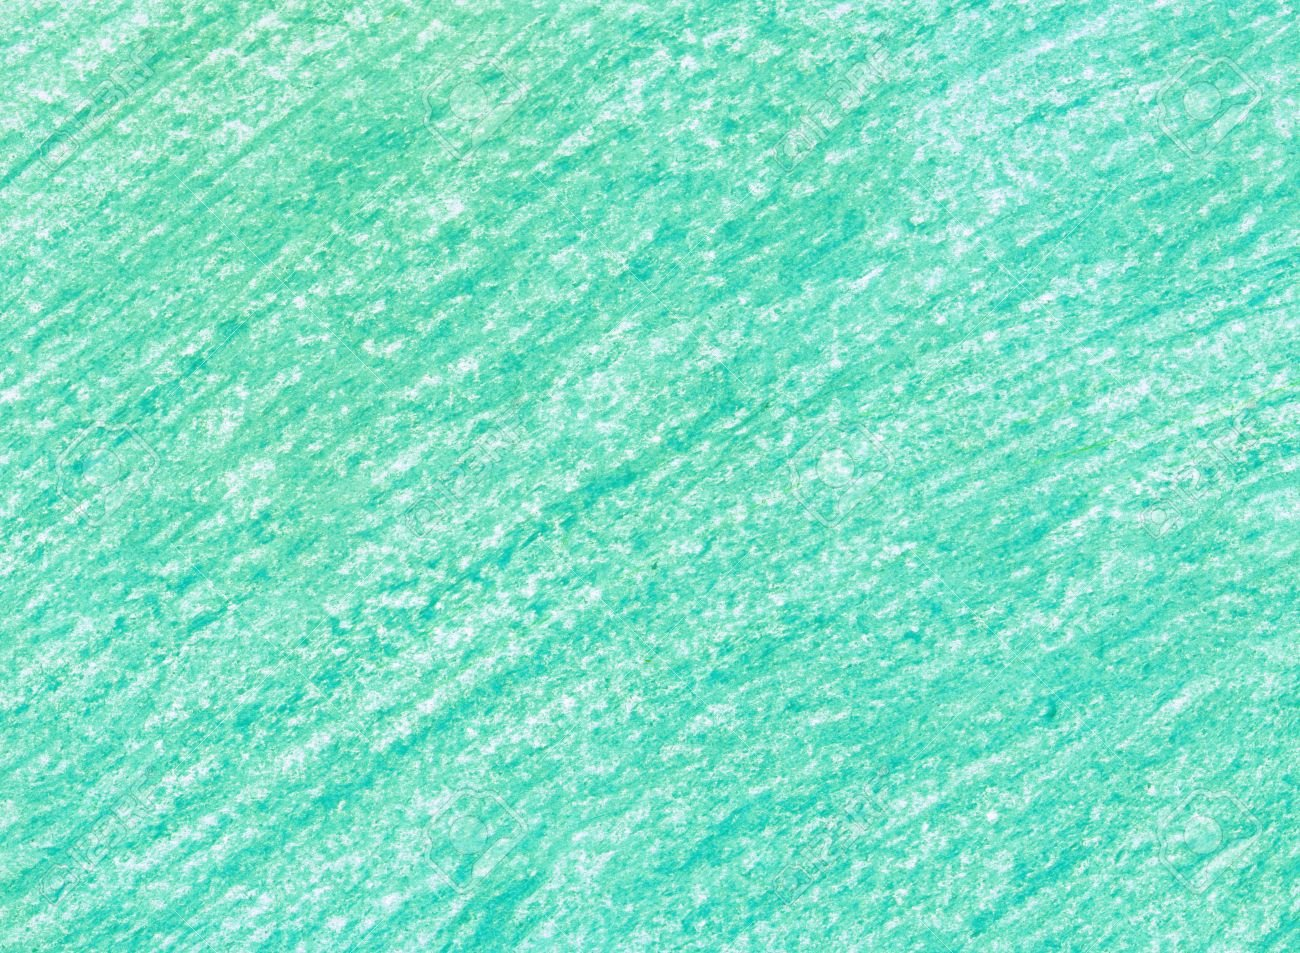 Crayon Scribble Emerald Background Blue Green Pastel Crayon 1300x953